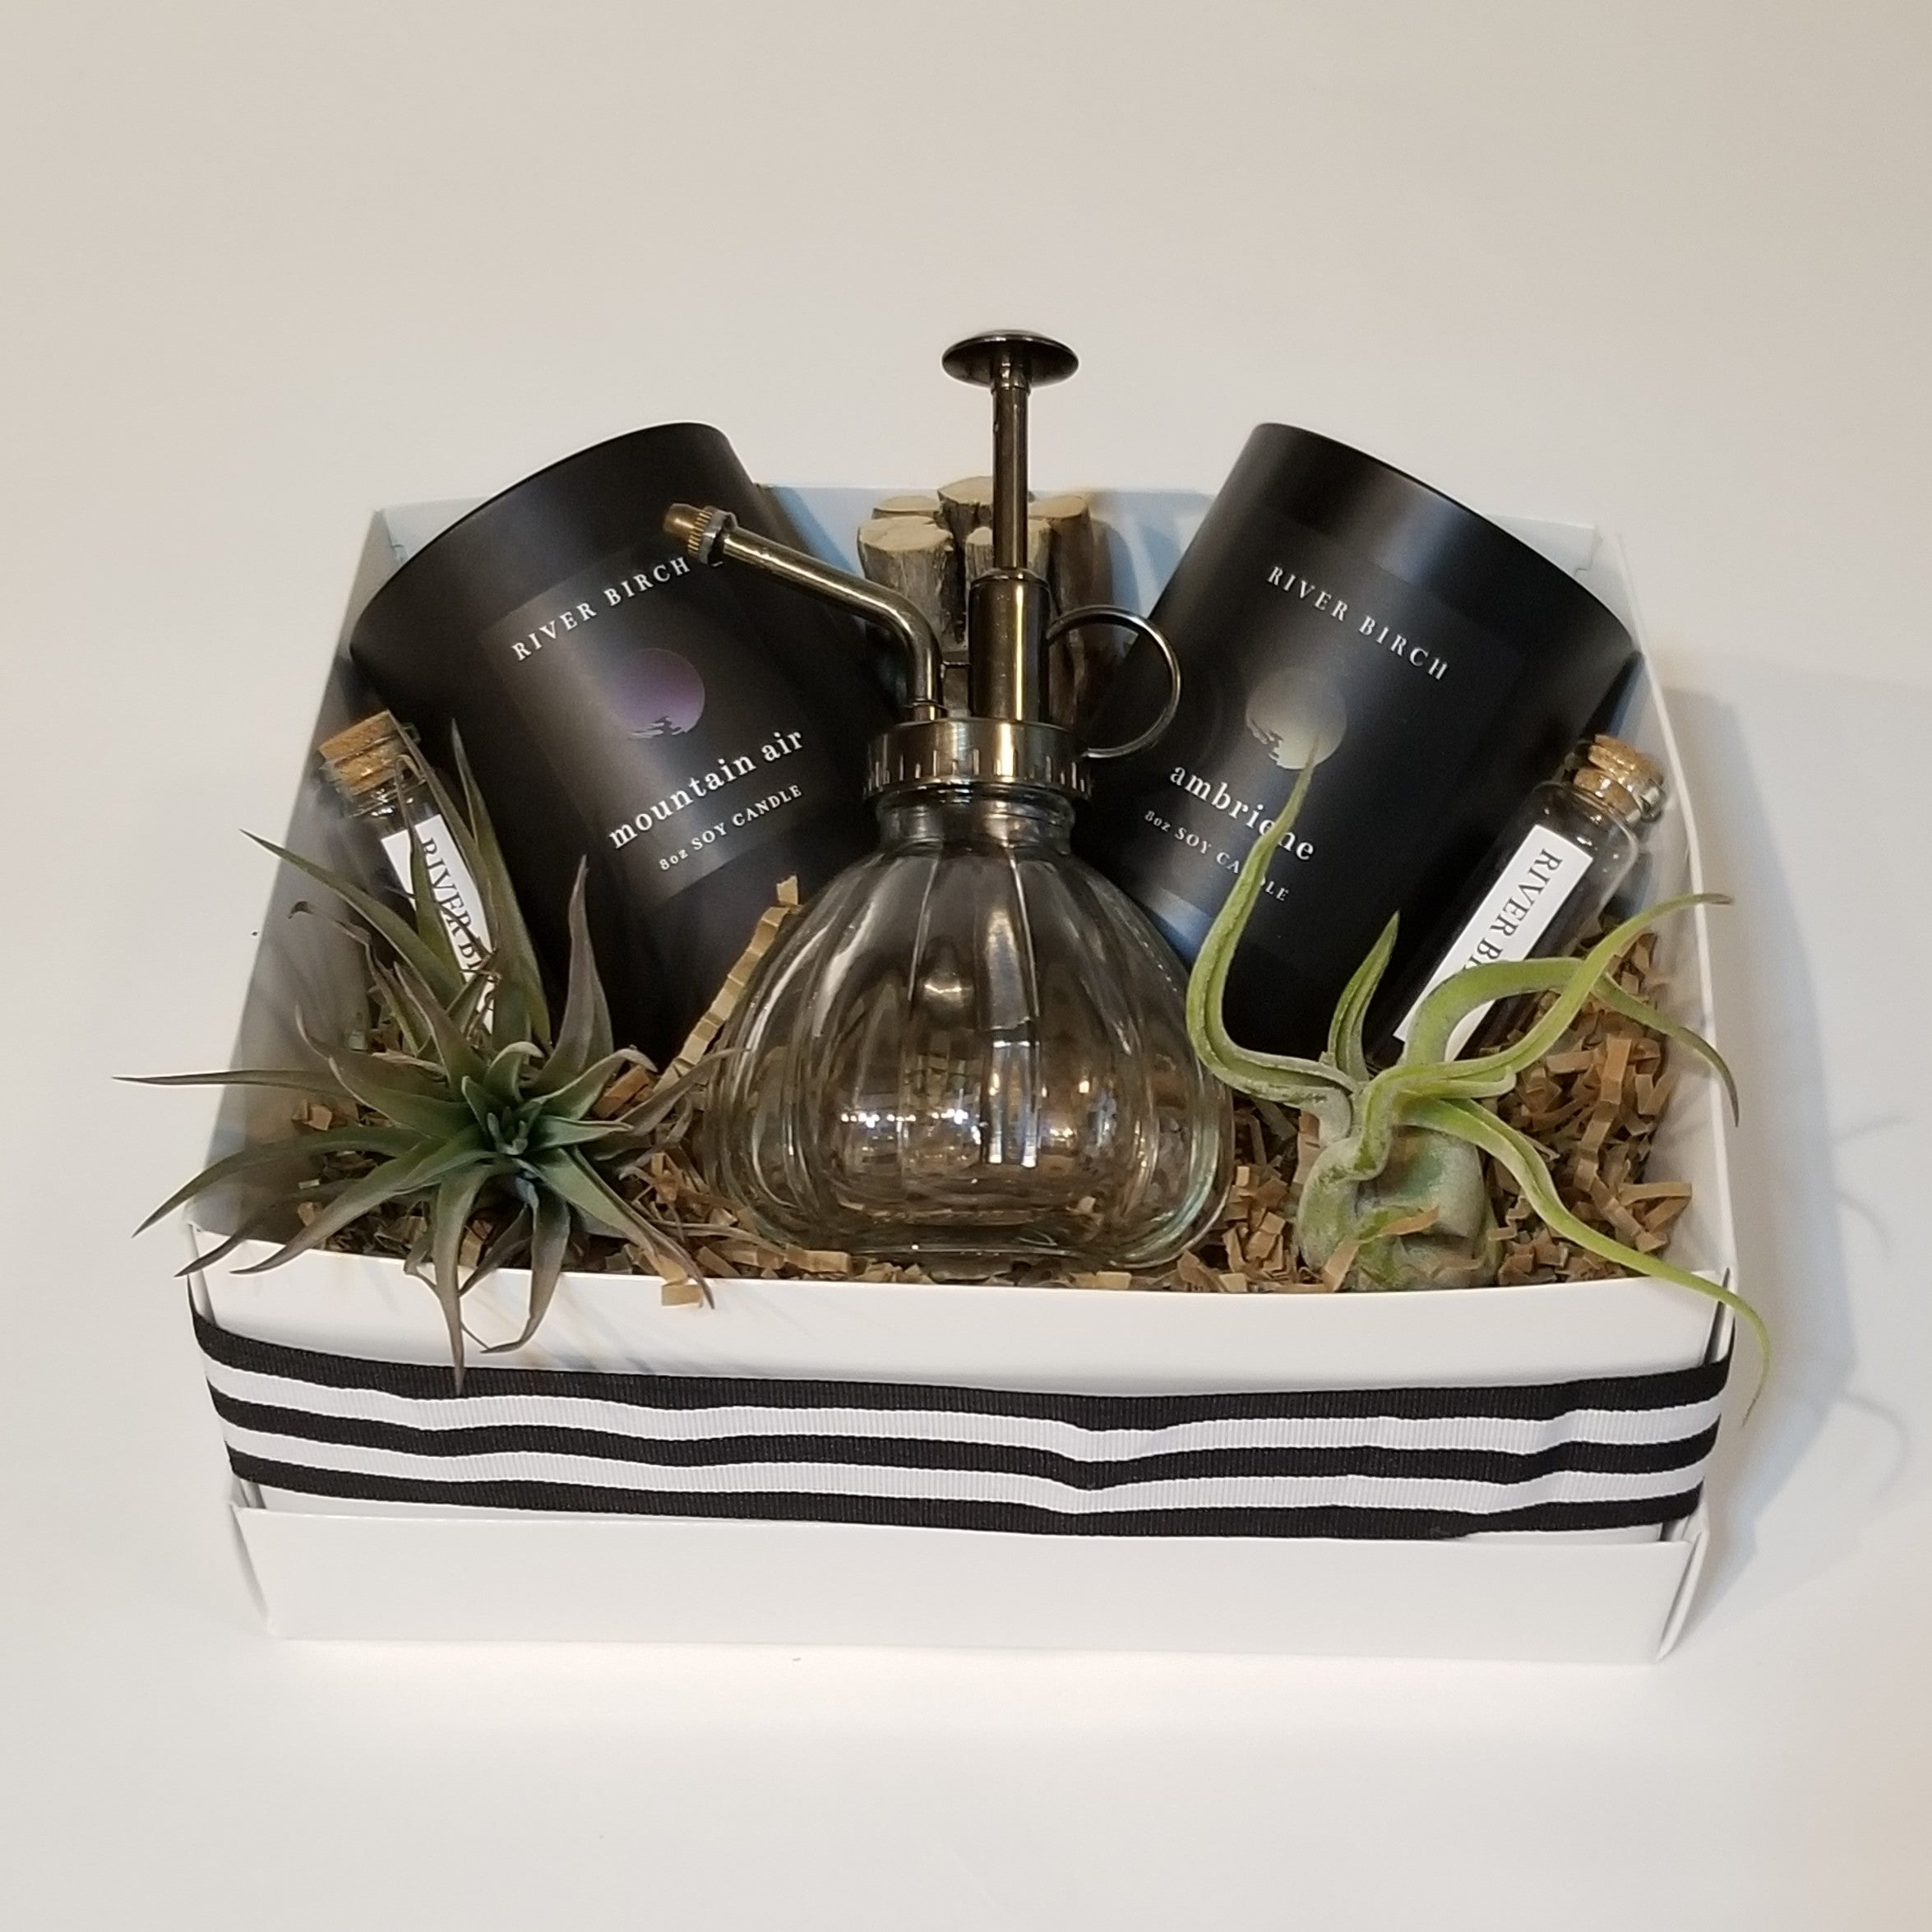 Thinking Of You - Candles & Air Plant Gift Box